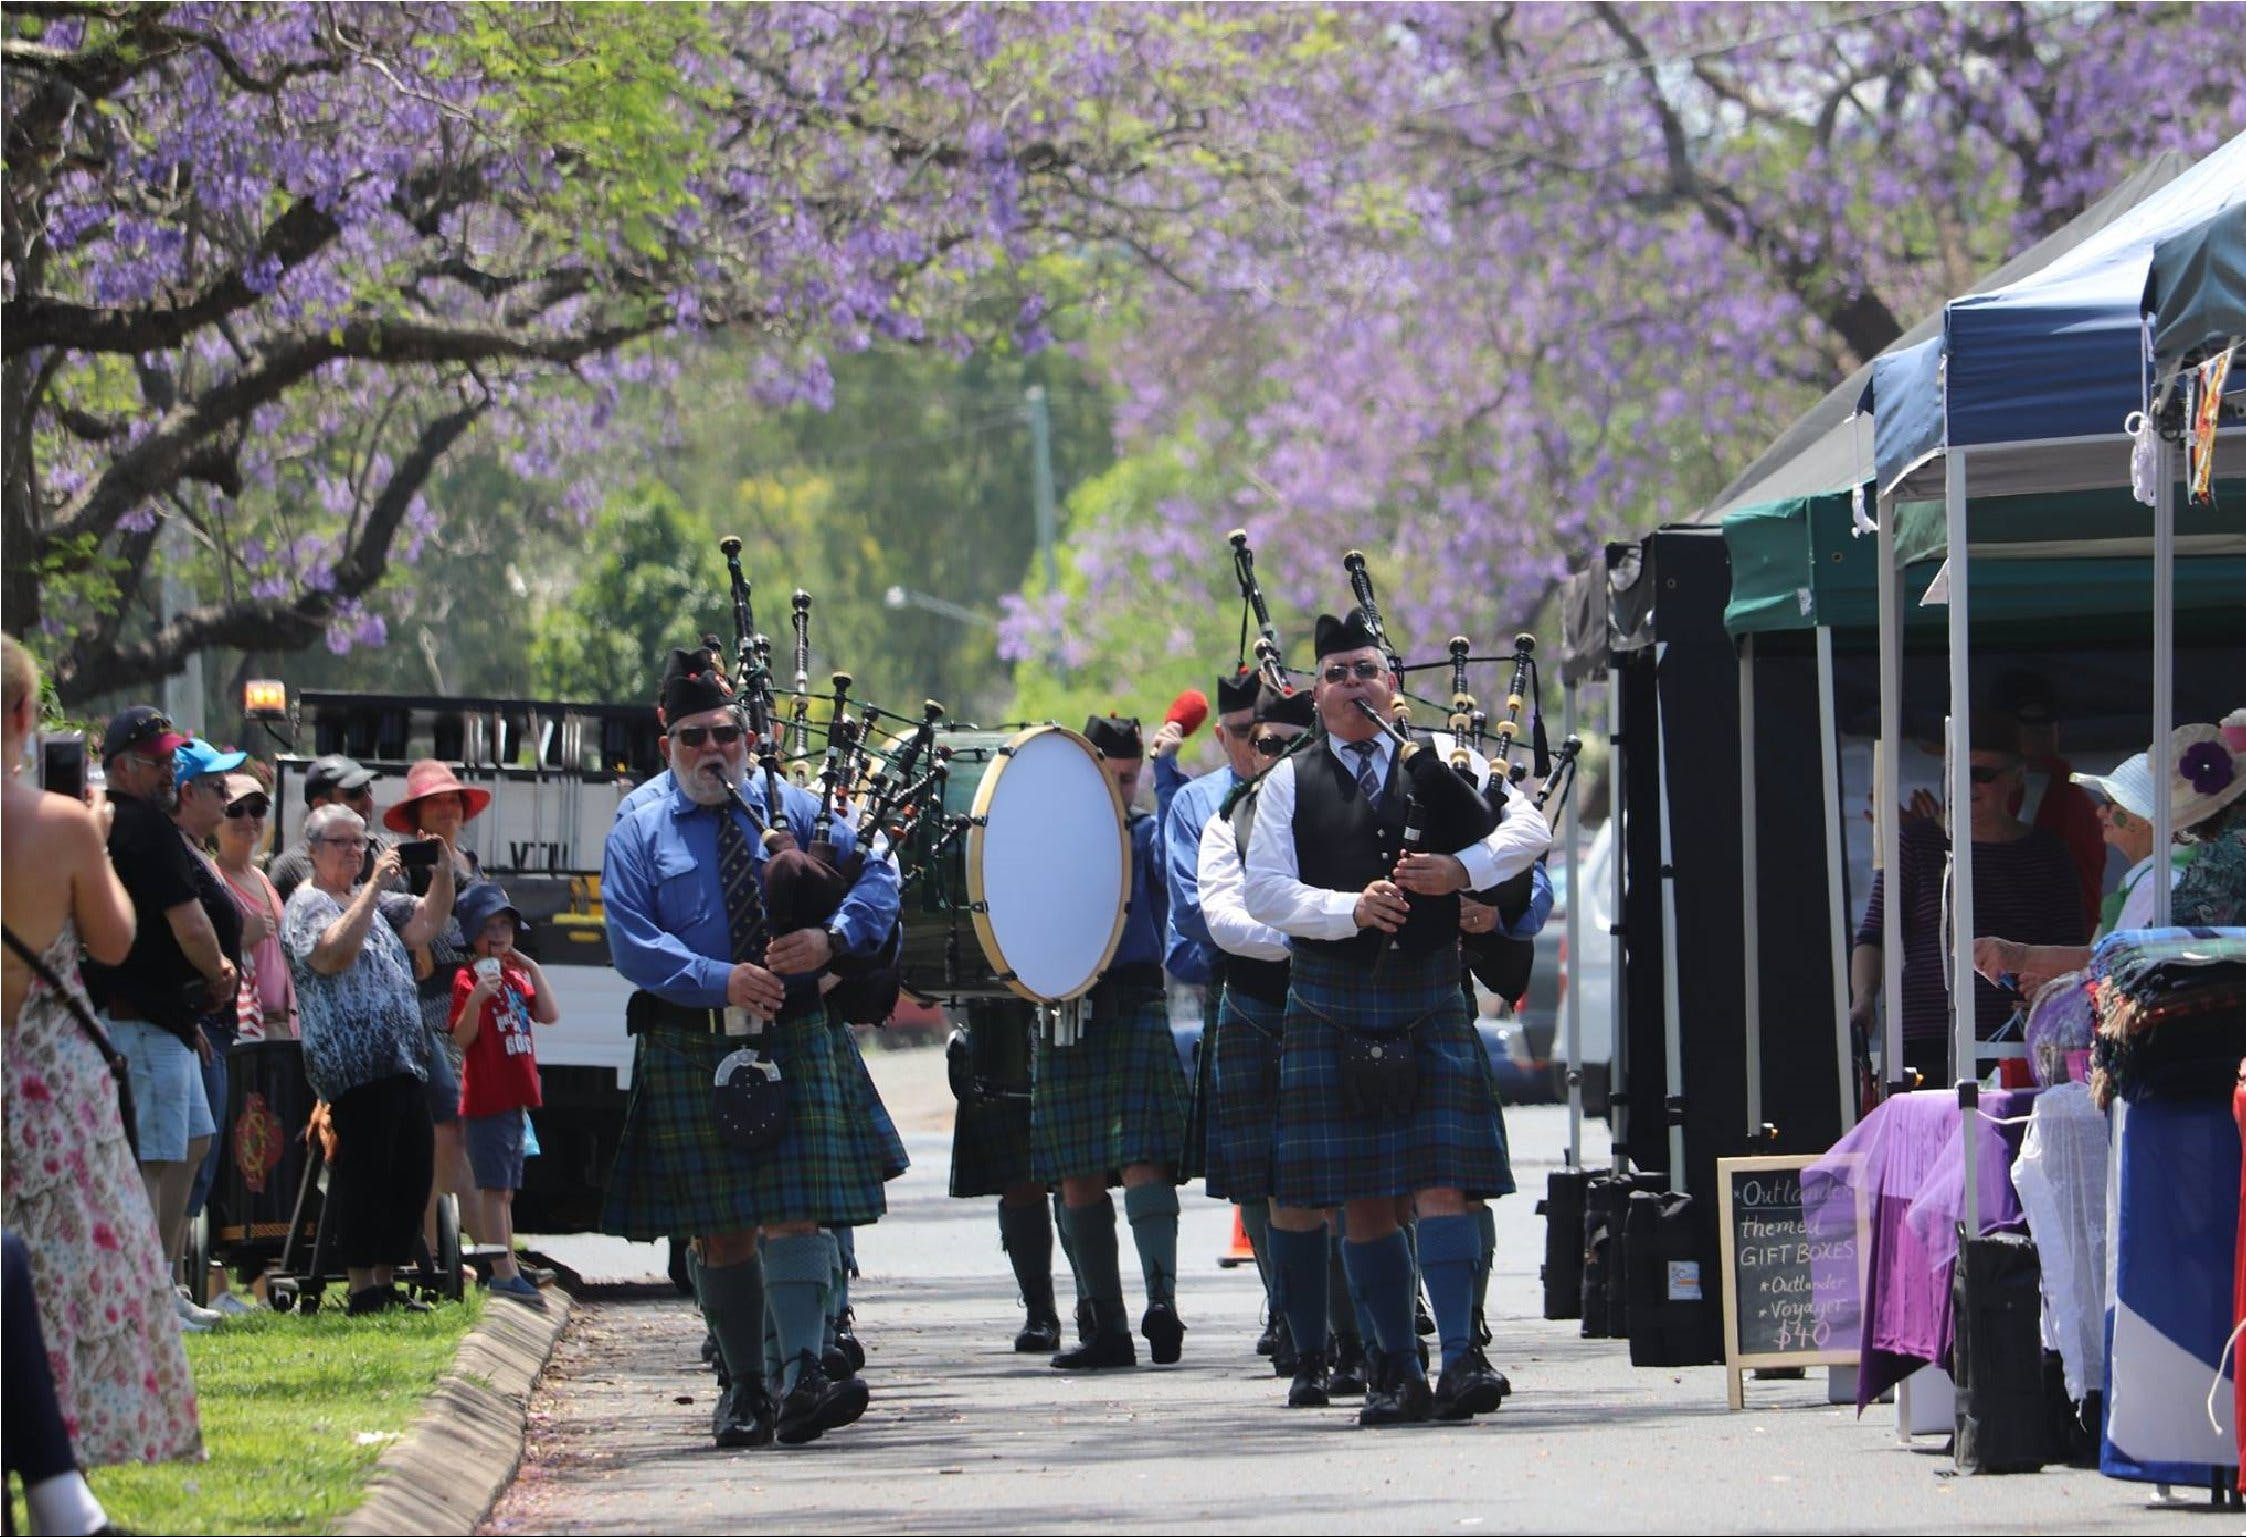 Celtic Festival of Queensland - Accommodation in Brisbane